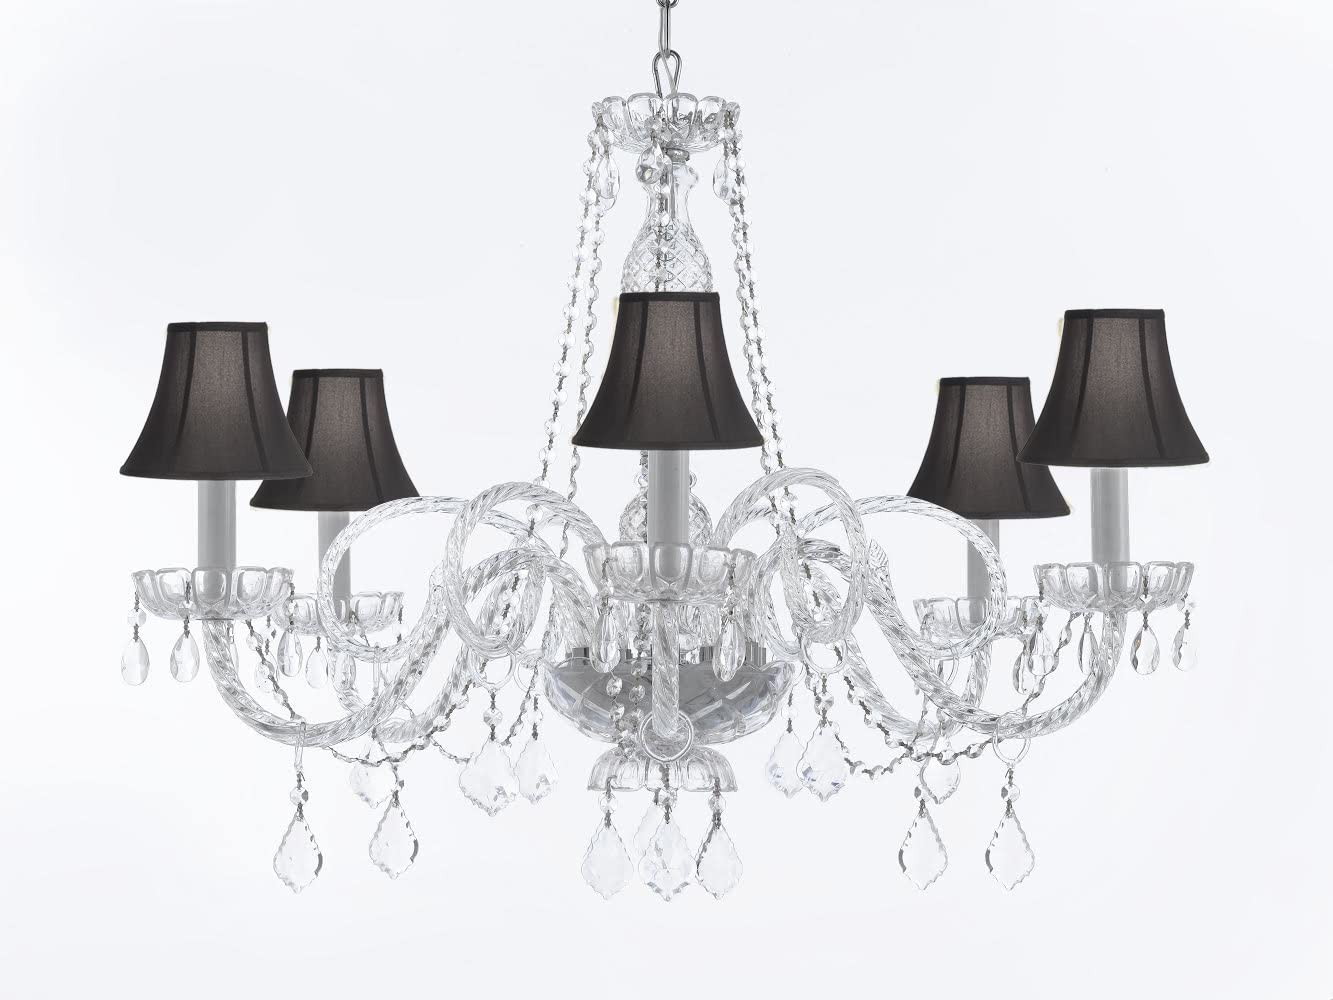 Crystal Chandelier Chandeliers Lighting with Black Shades H27 x W32